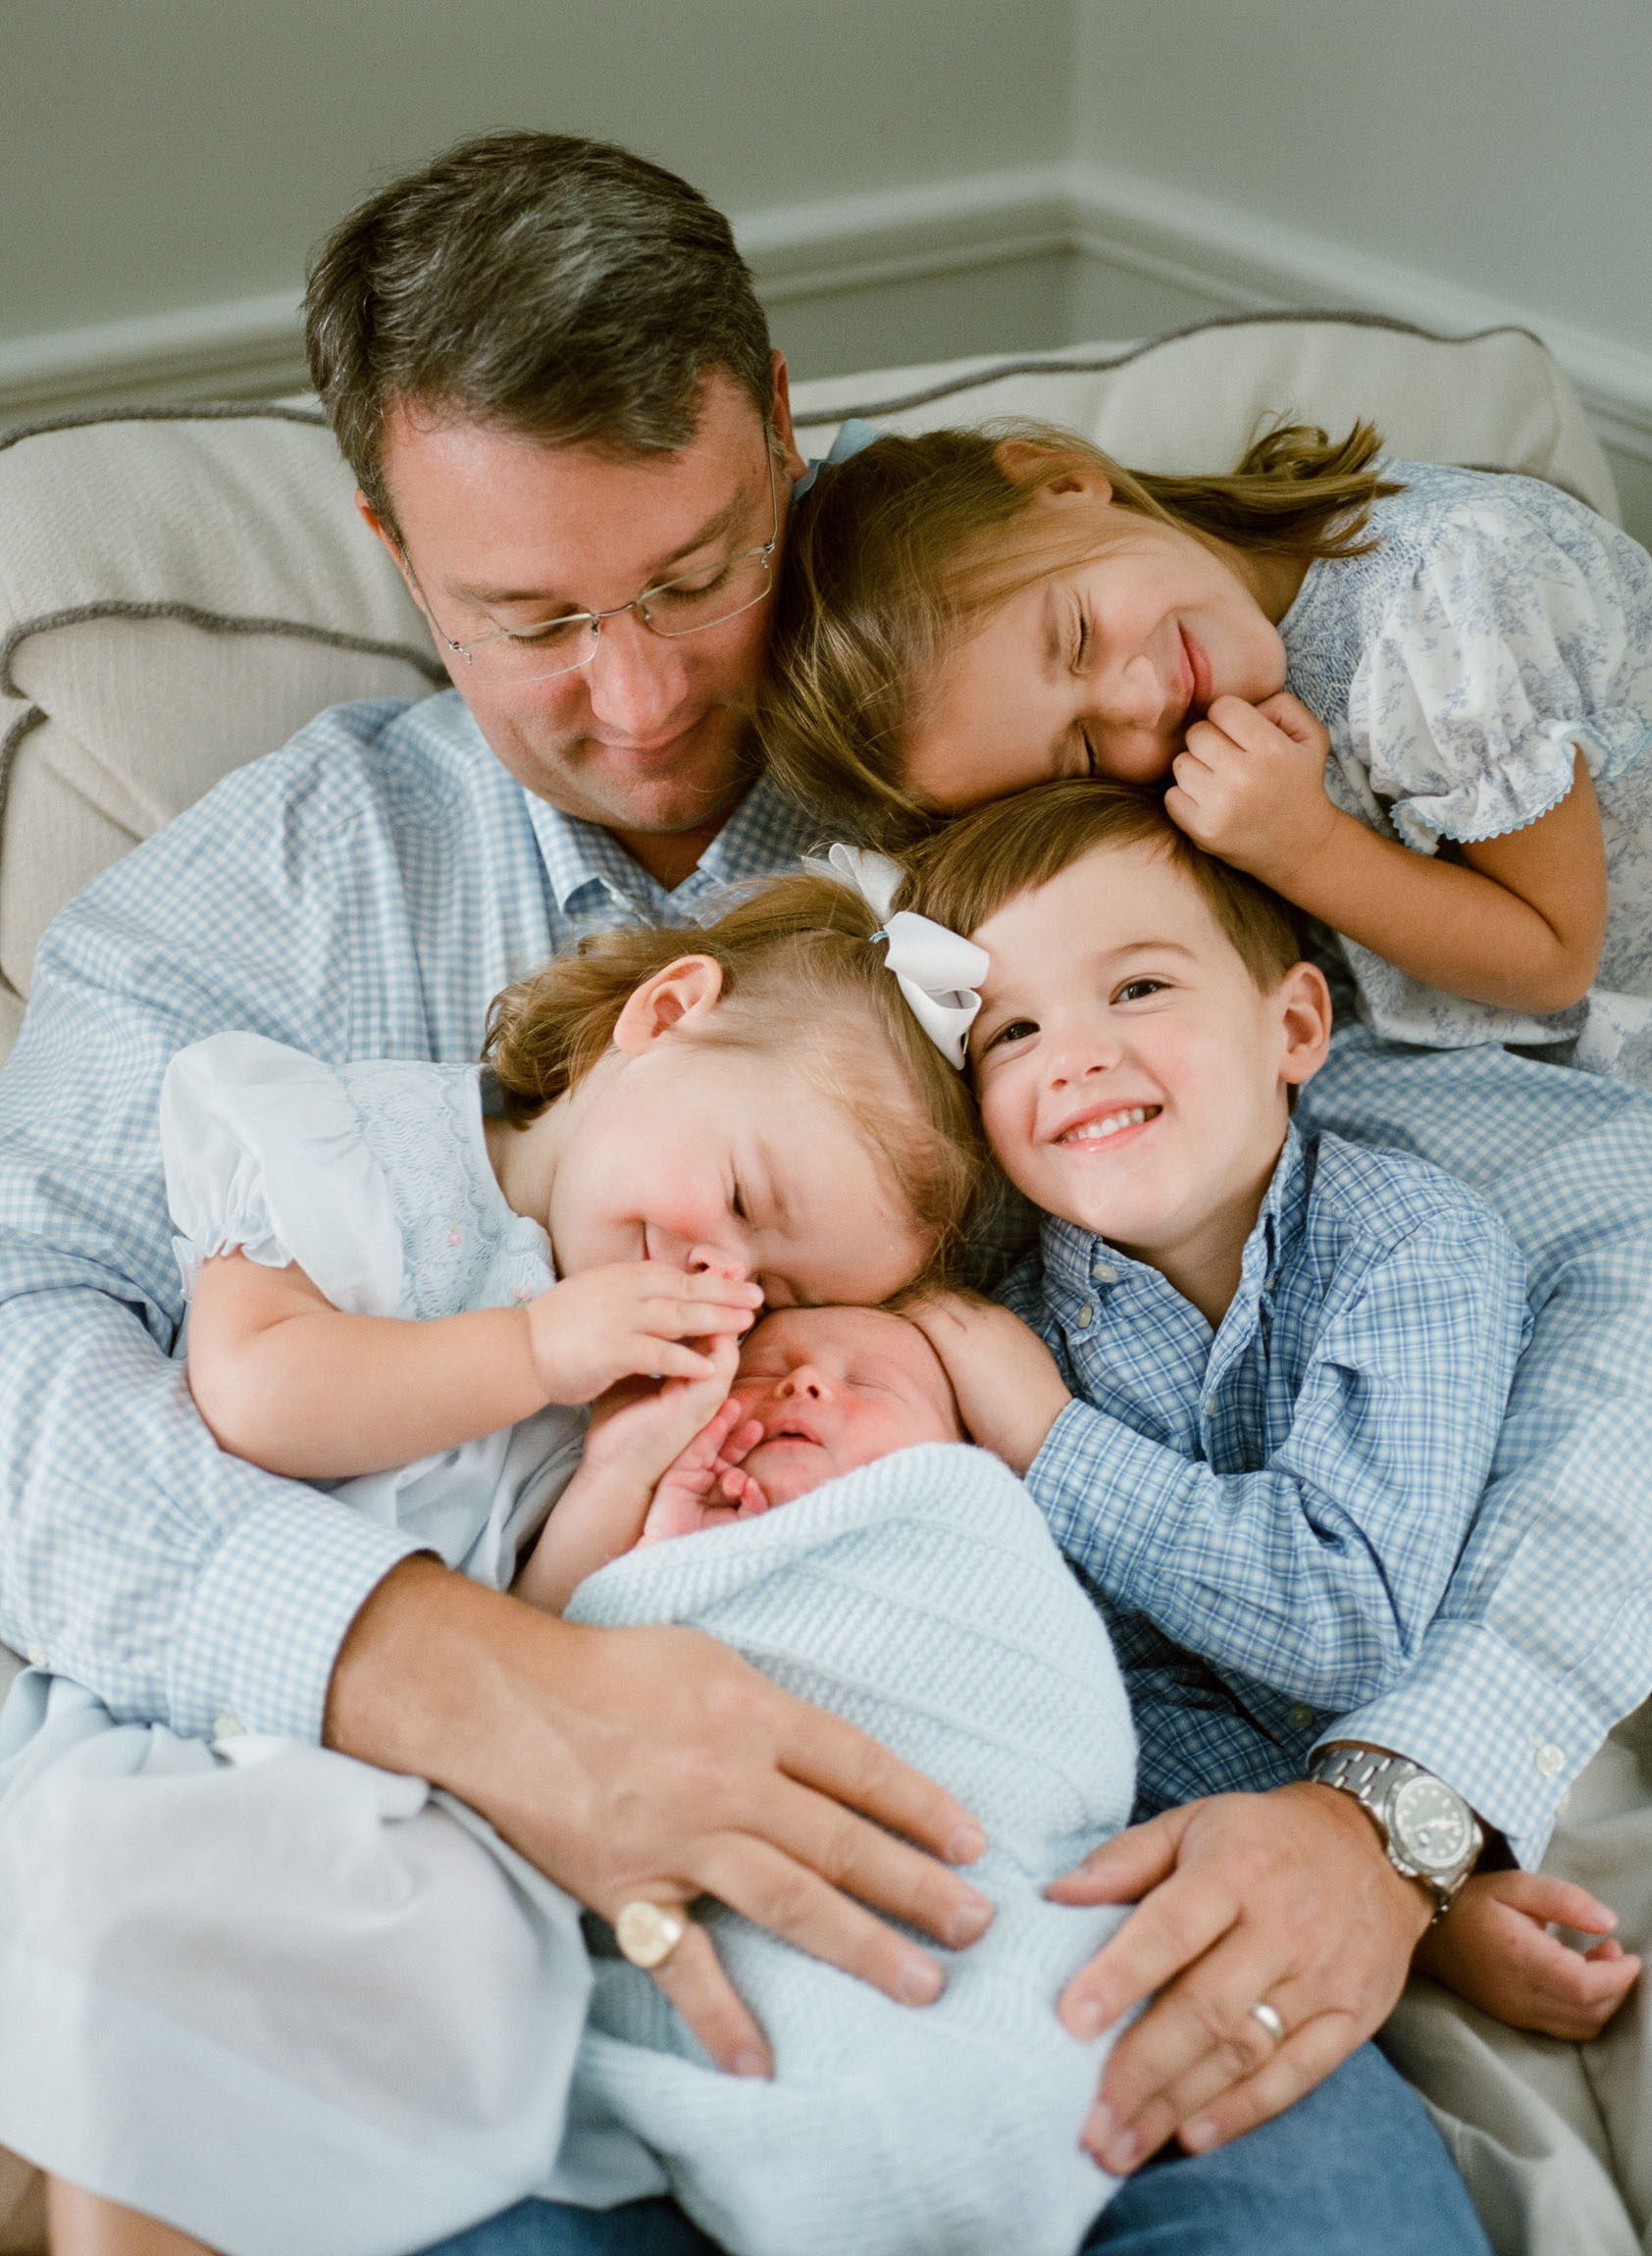 raleigh-newborn-family-film-photographer-lifestyle-session-007